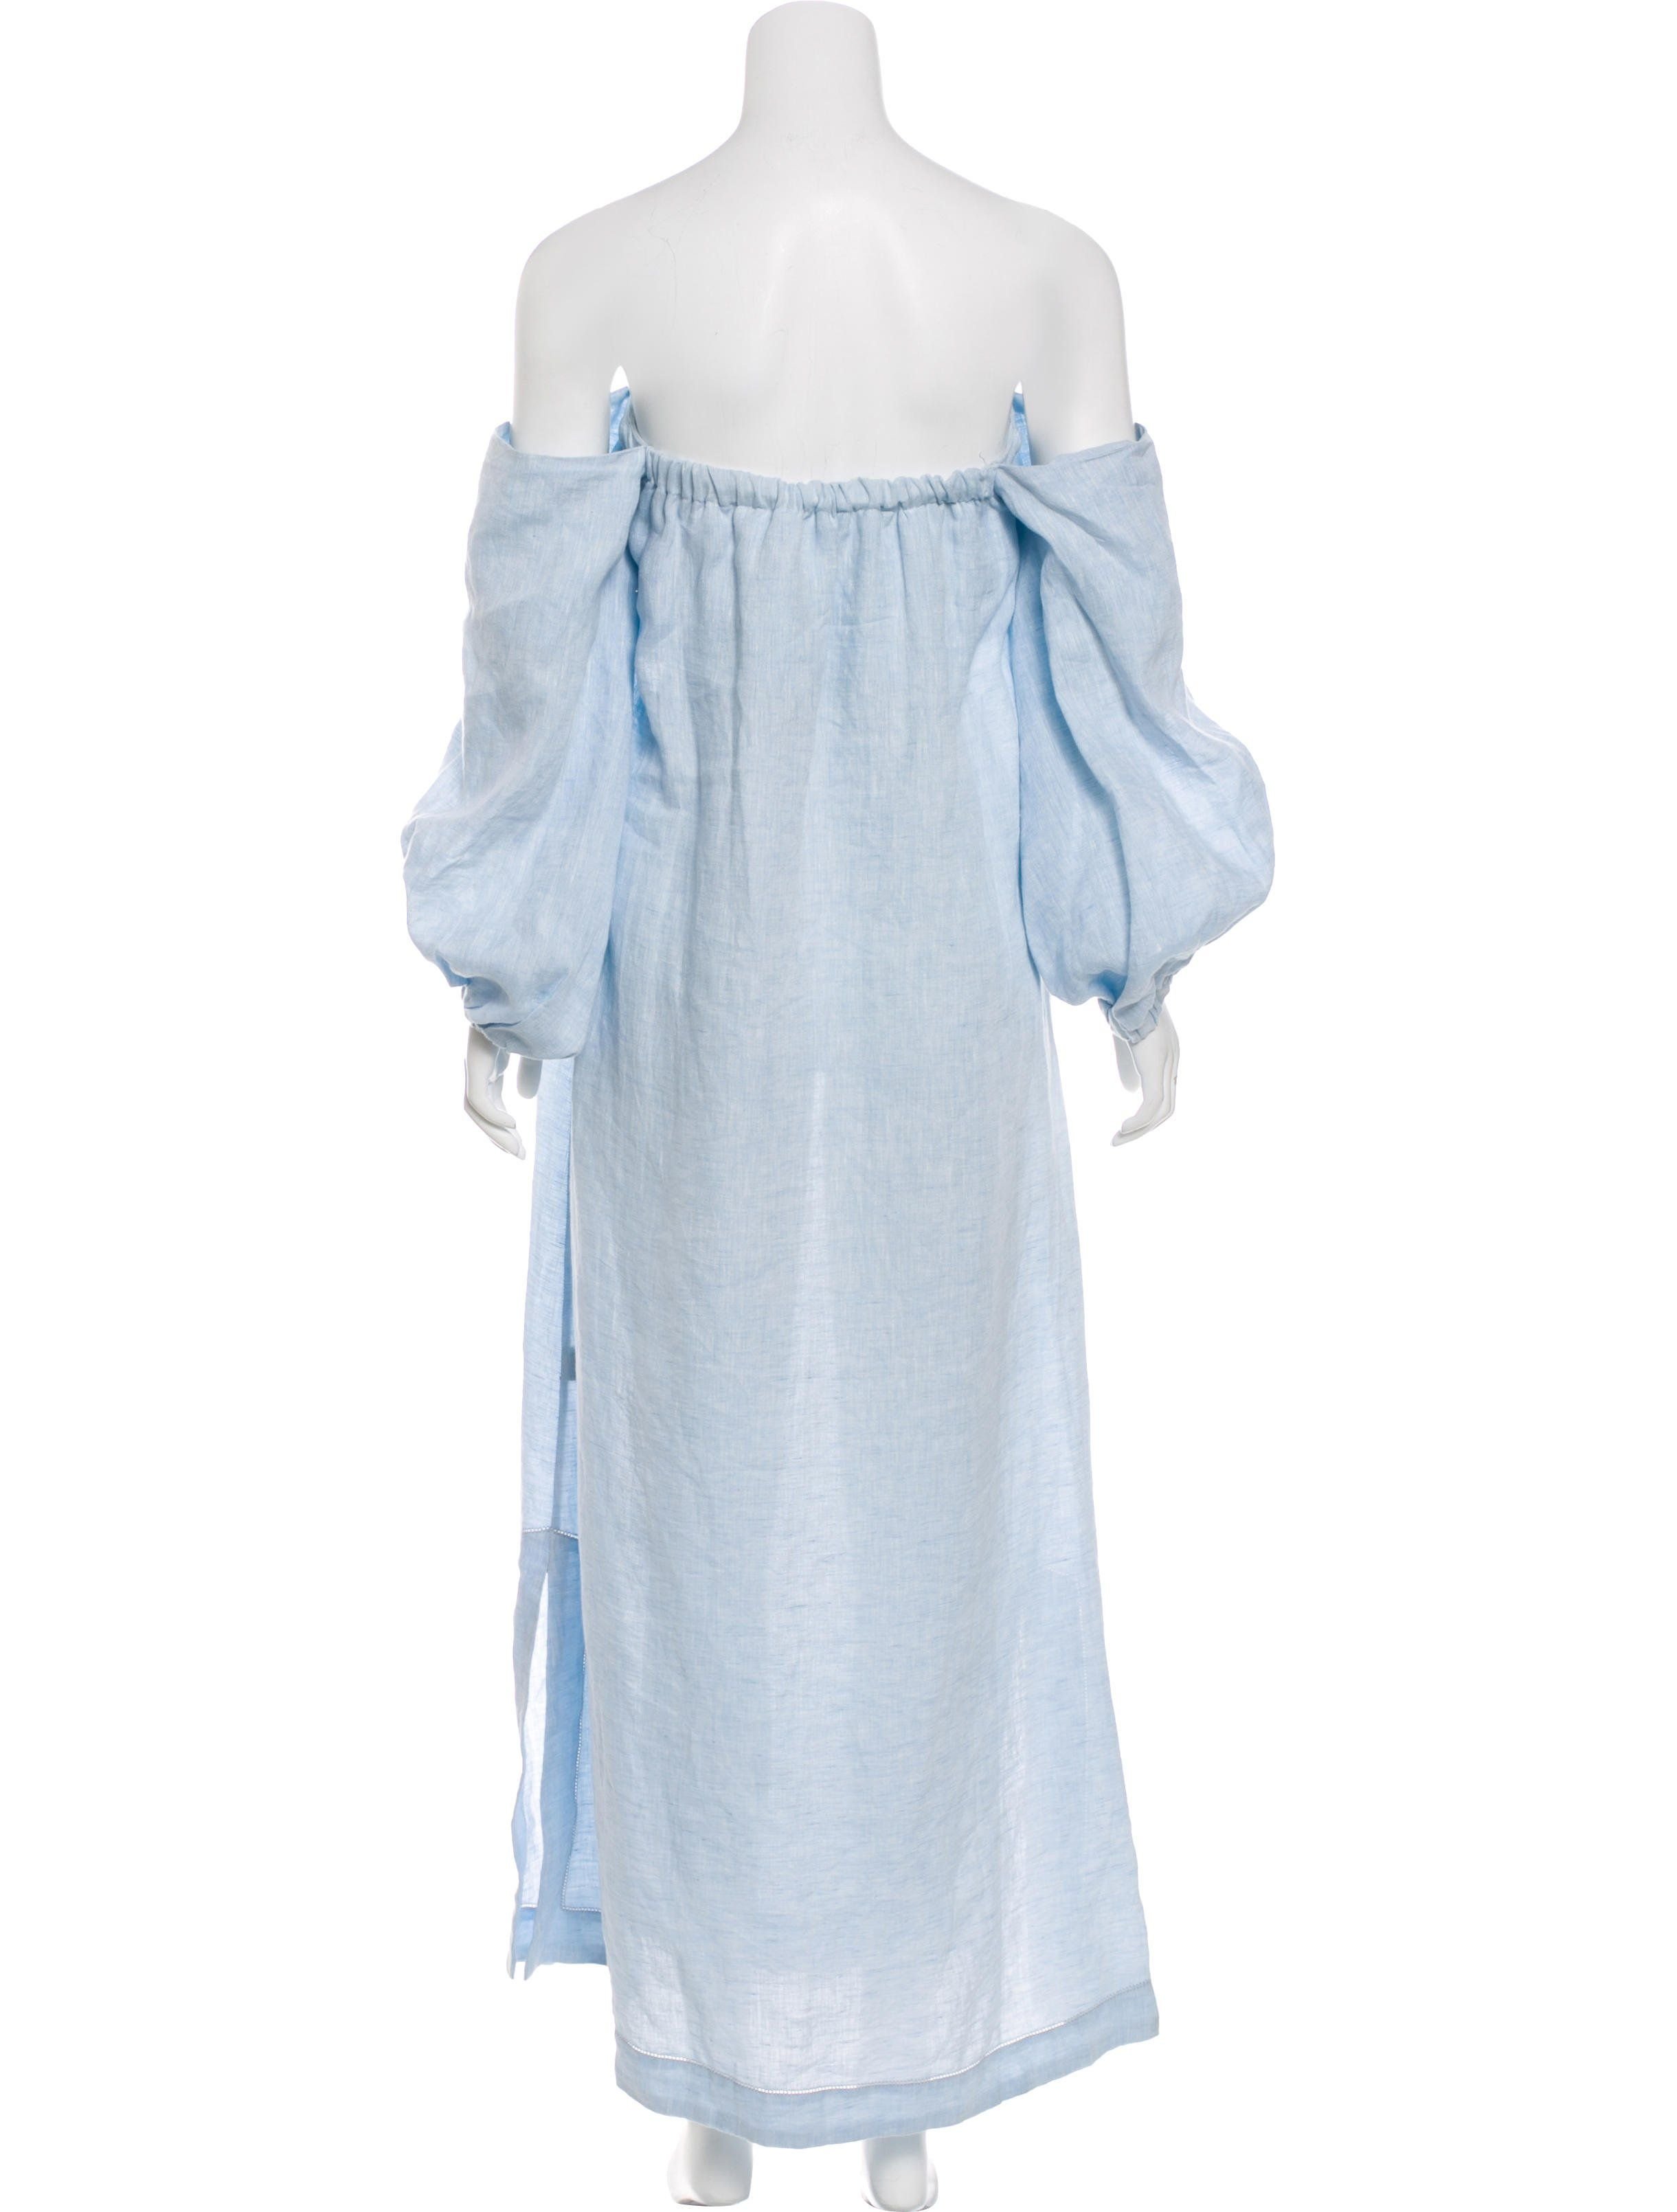 ab51e2f42e Blue Lisa Marie Fernandez off-the-shoulder linen dress with long sleeves  and dual seam pockets at sides. Designer size 2.